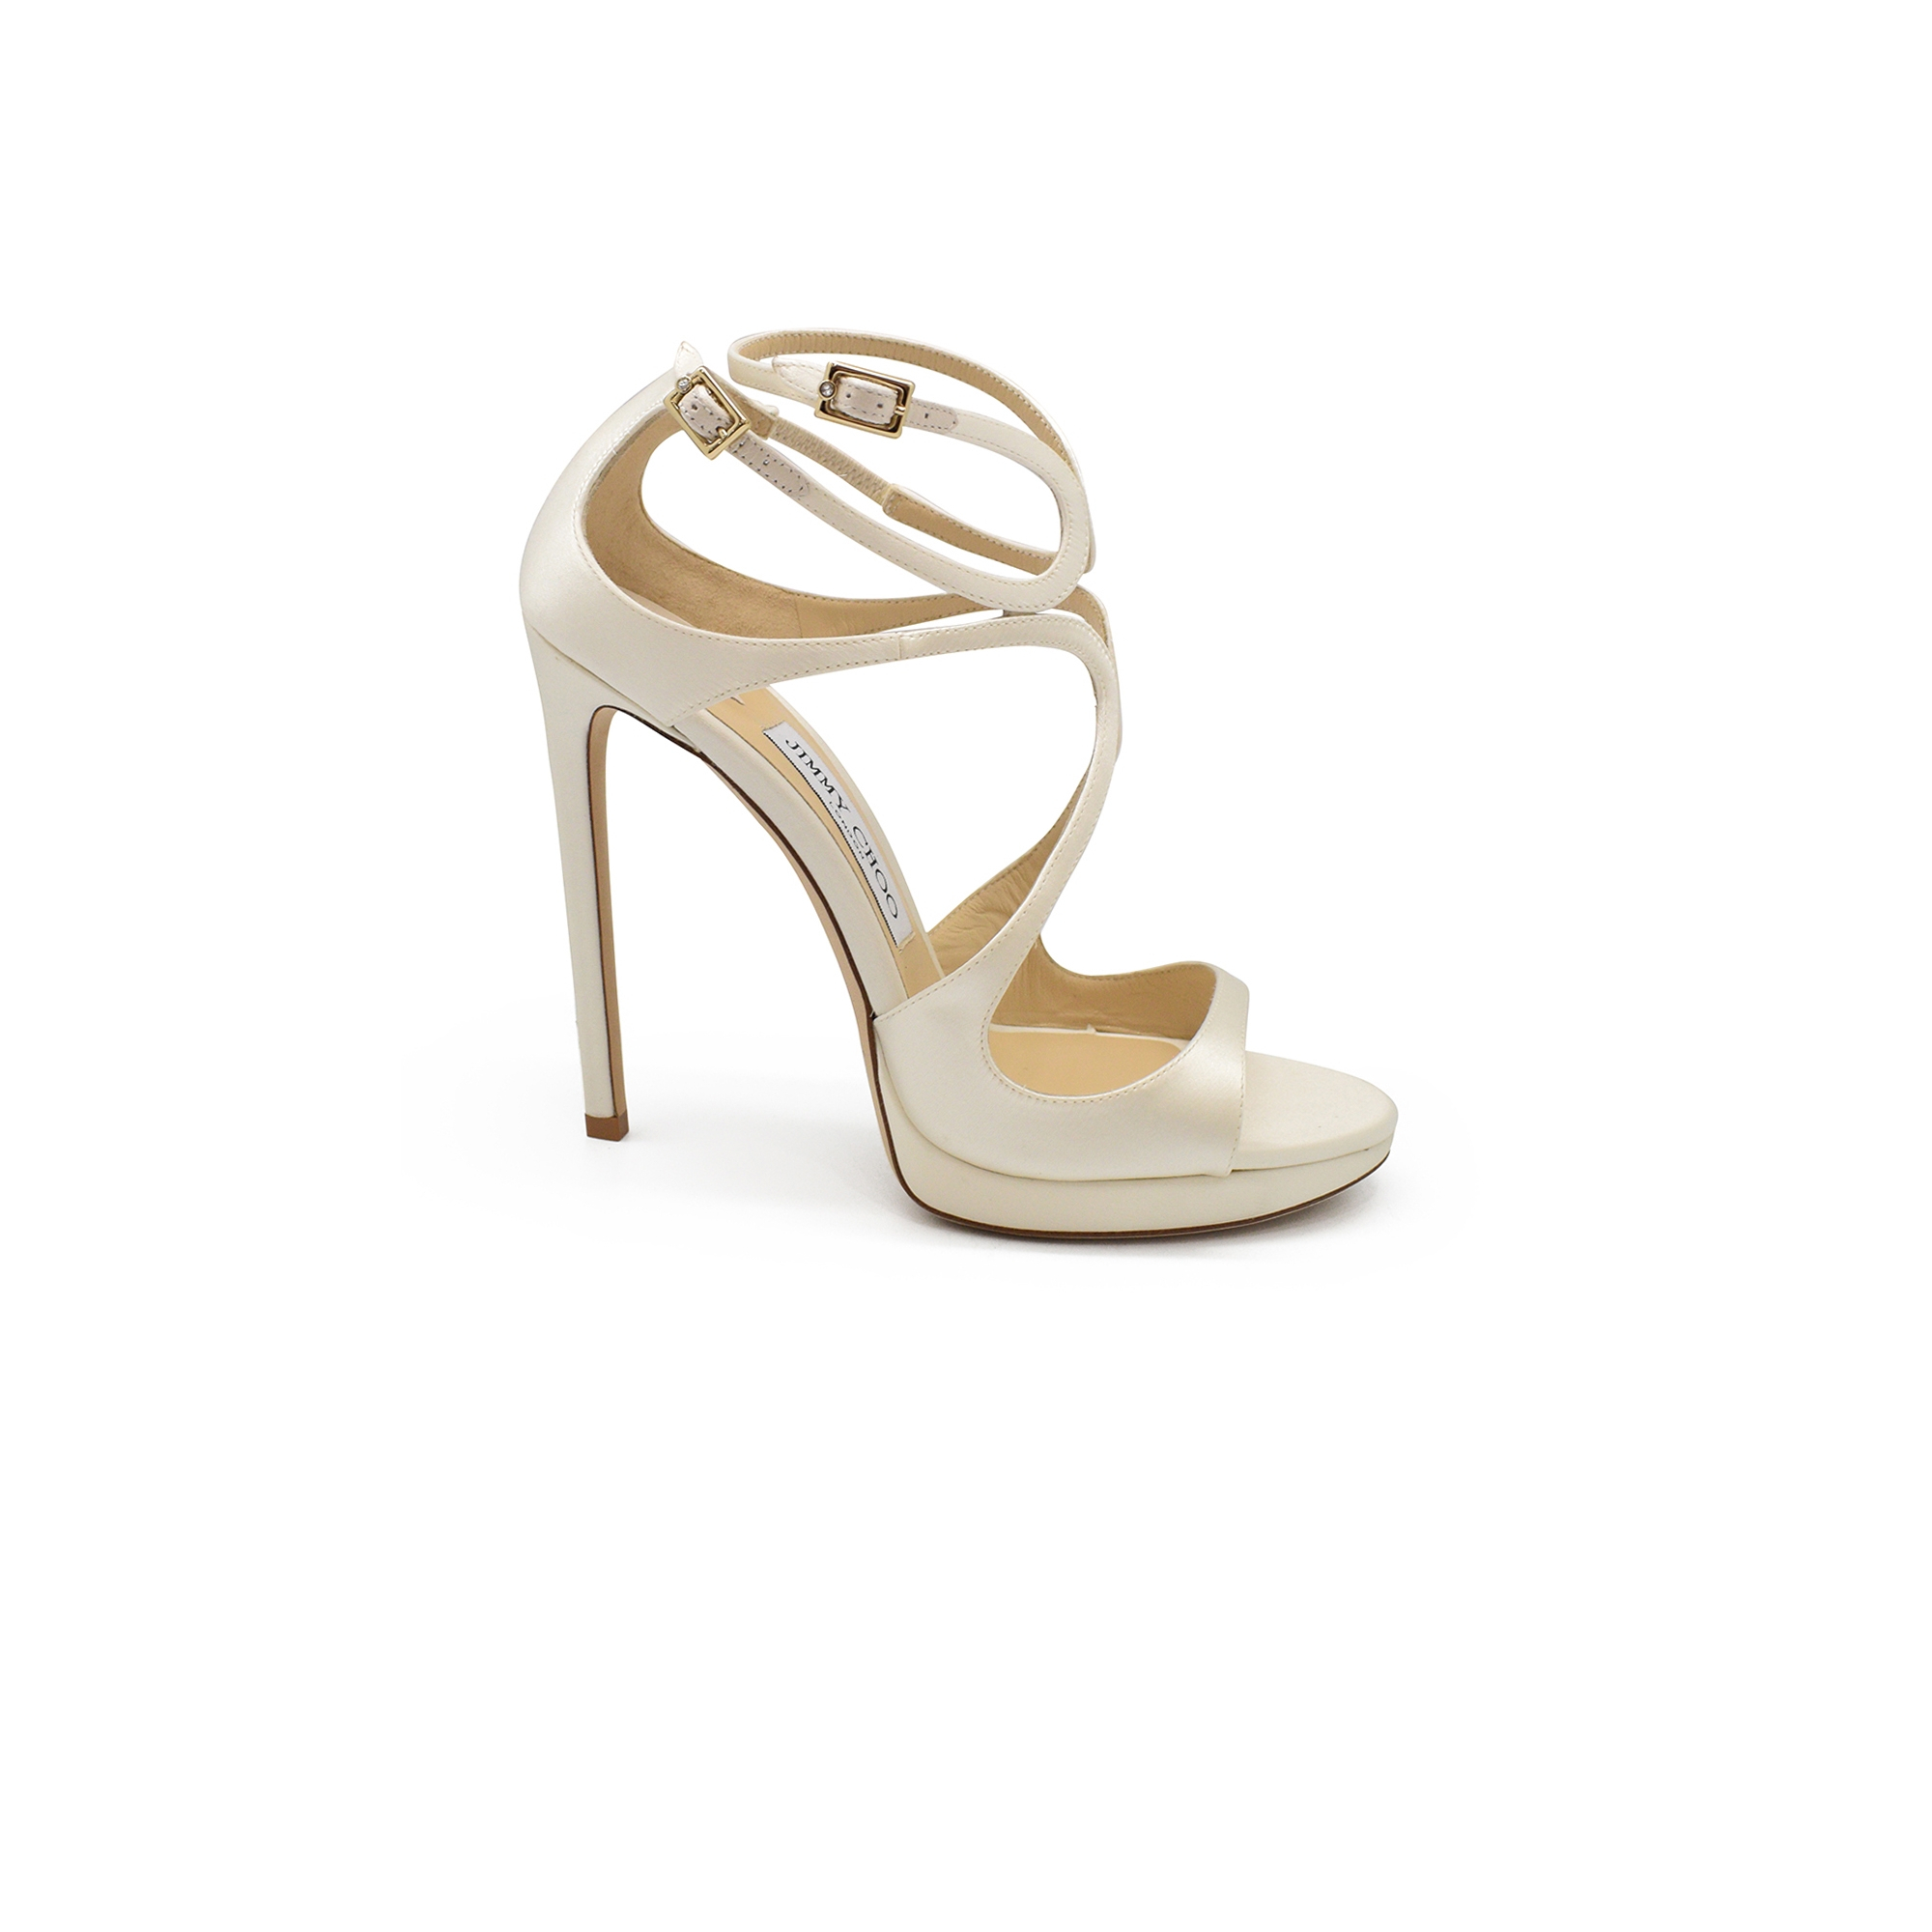 Jimmy Choo Lance 120 in ivory satin with double ankle strap and very high heel